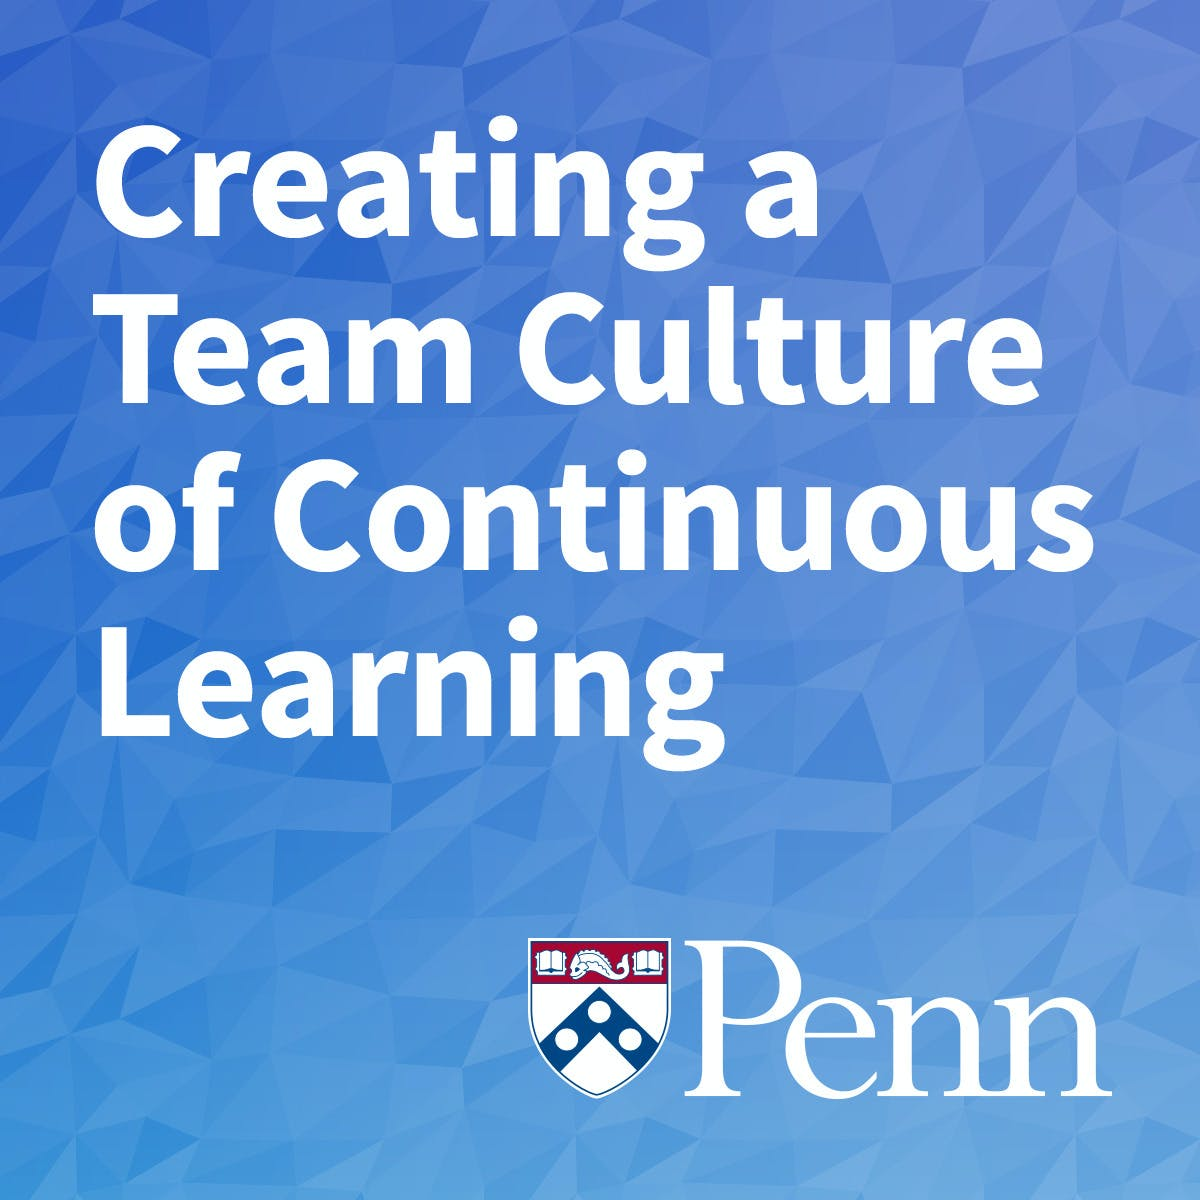 Creating a Team Culture of Continuous Learning